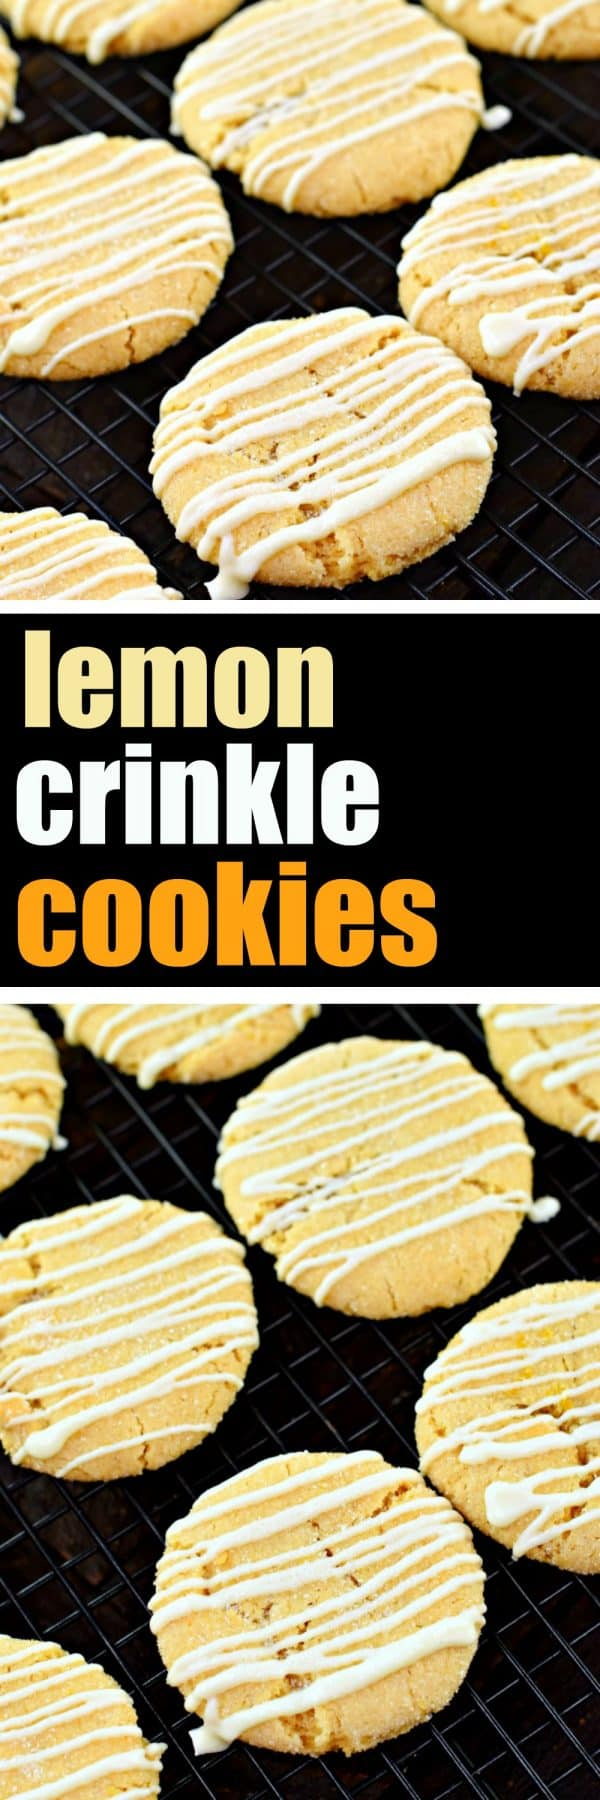 Lemon Crinkle Cookies, COOKIES, LEMON, DESSERT, WHITE CHOCOLATE, LEMONDOODLE, SANDING SUGAR